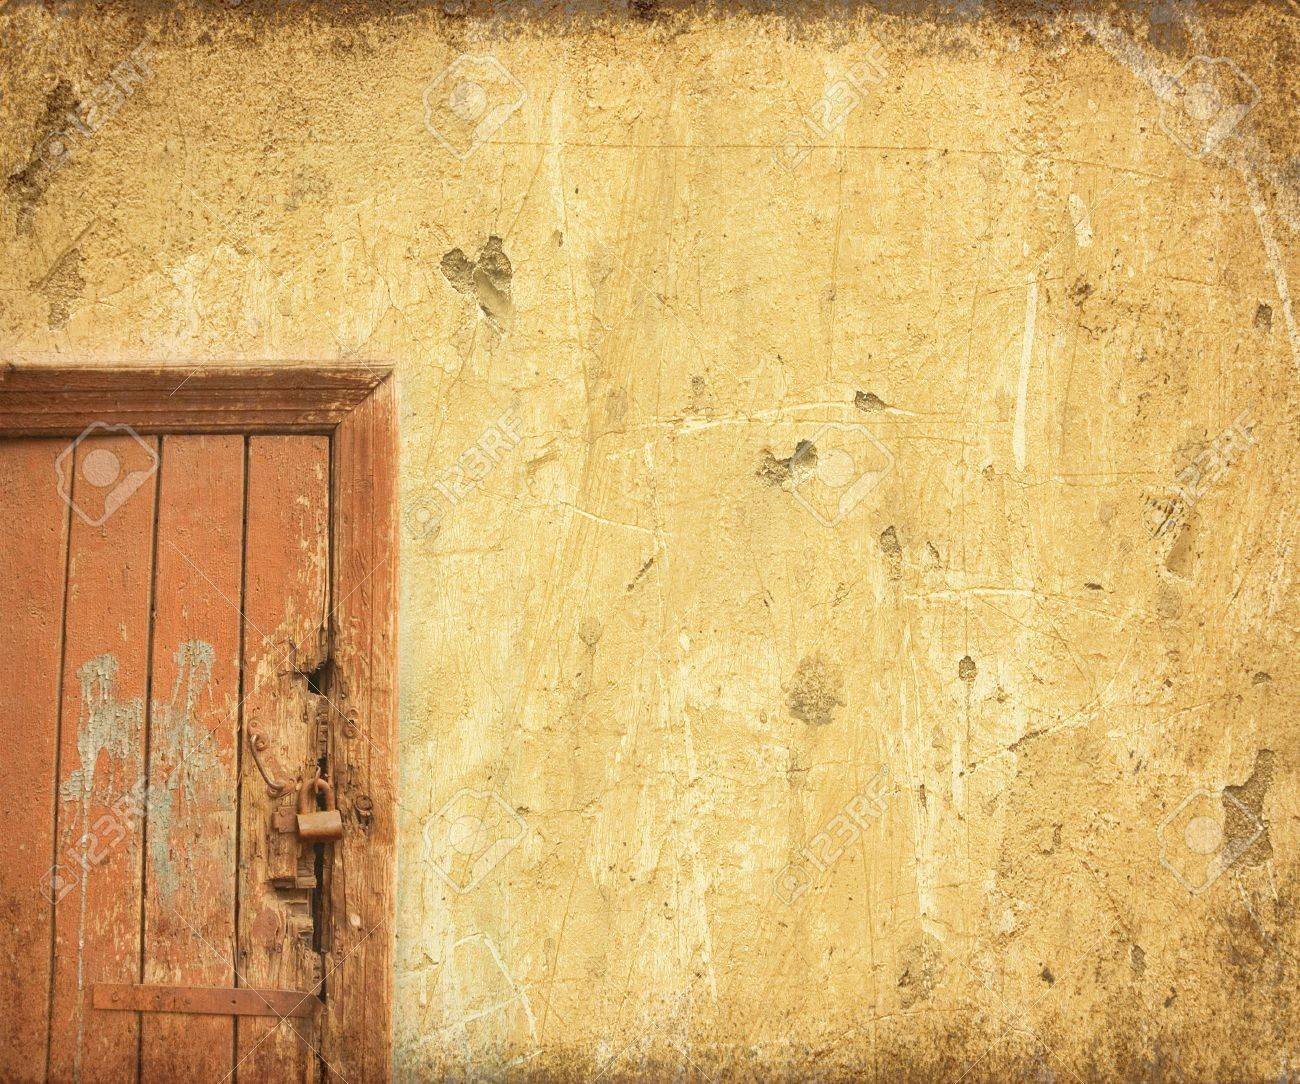 grunge door background with space for text Stock Photo - 371431